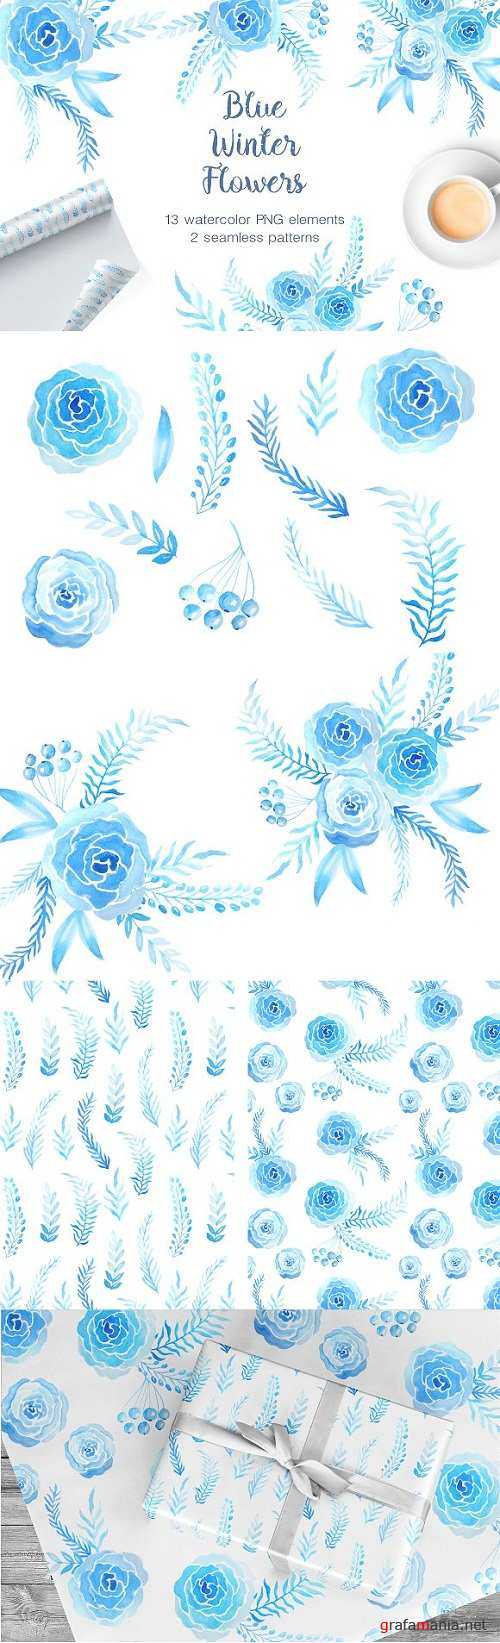 Watercolor Blue Winter Blooms 1268984